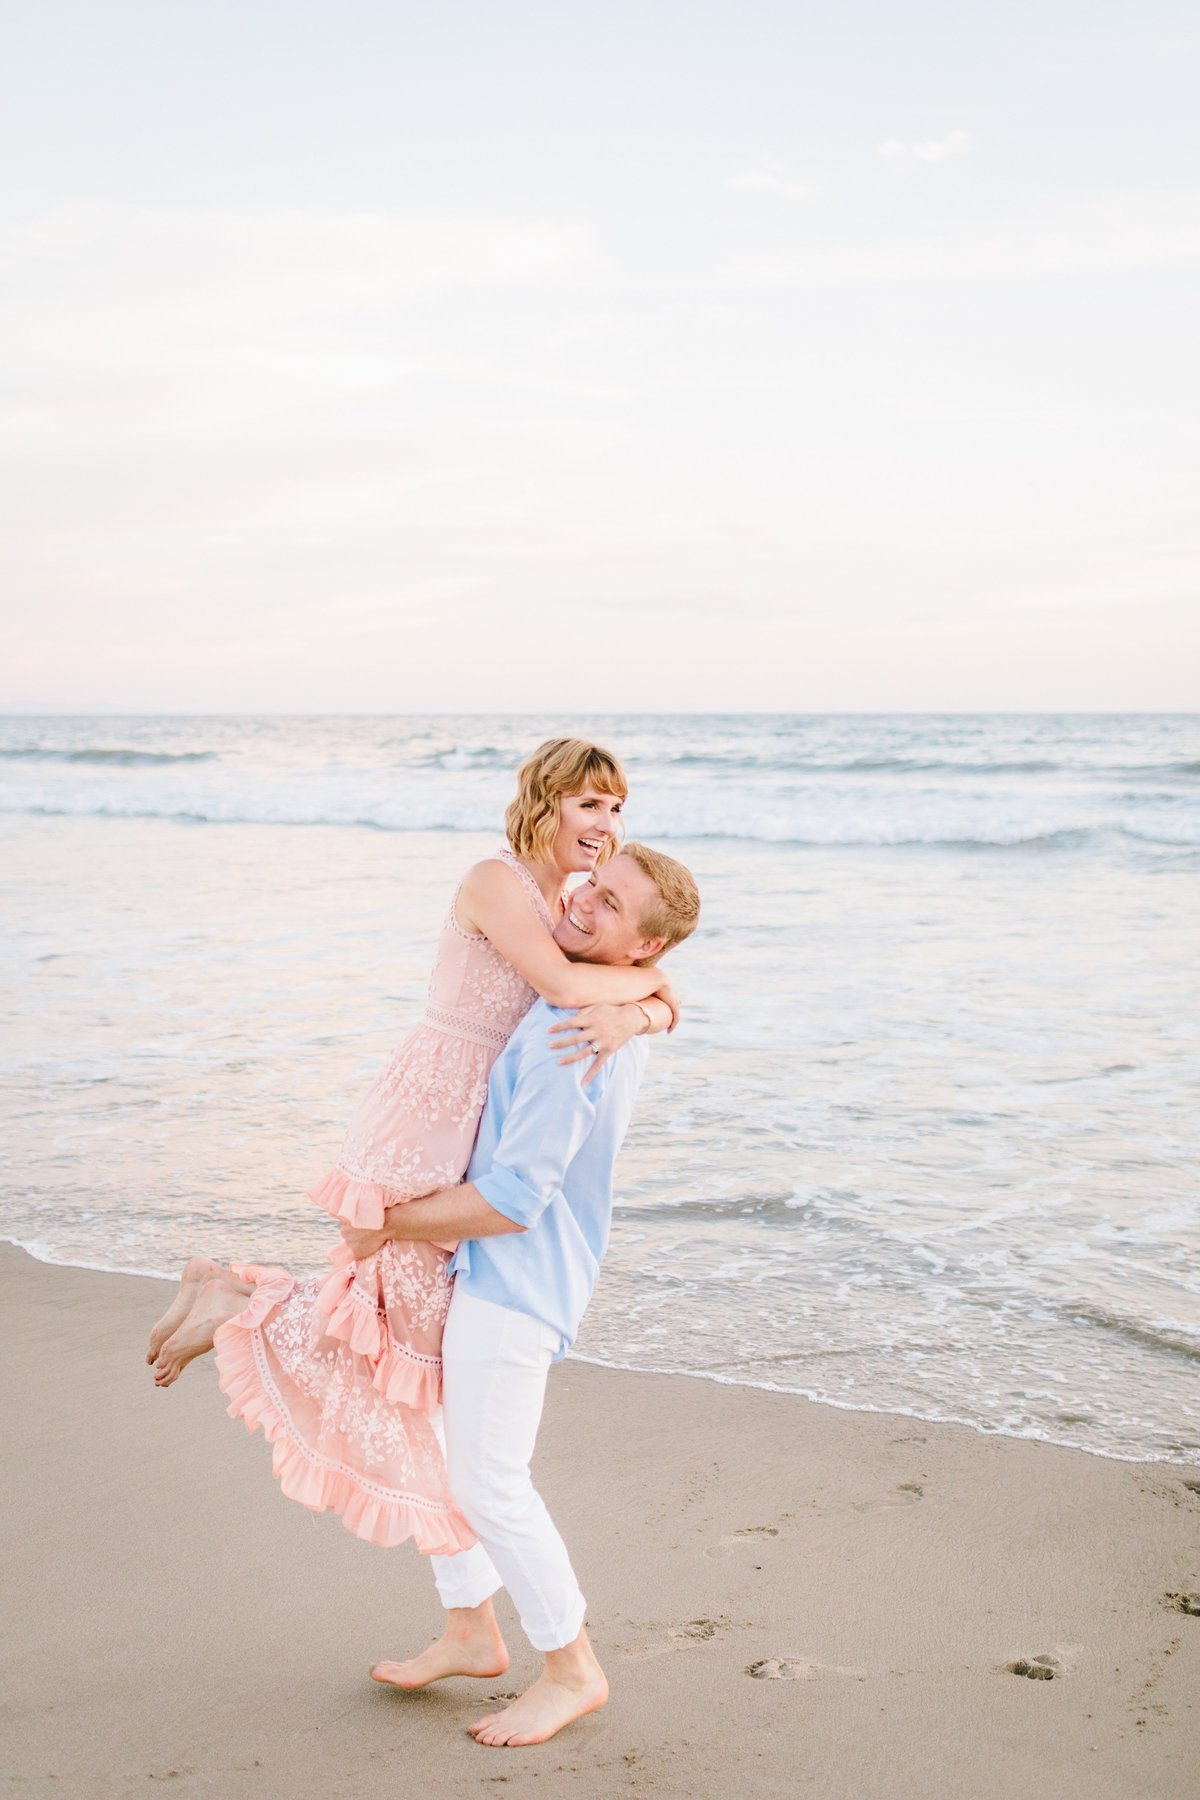 Best California Engagement Photographer_Jodee Debes Photography_194